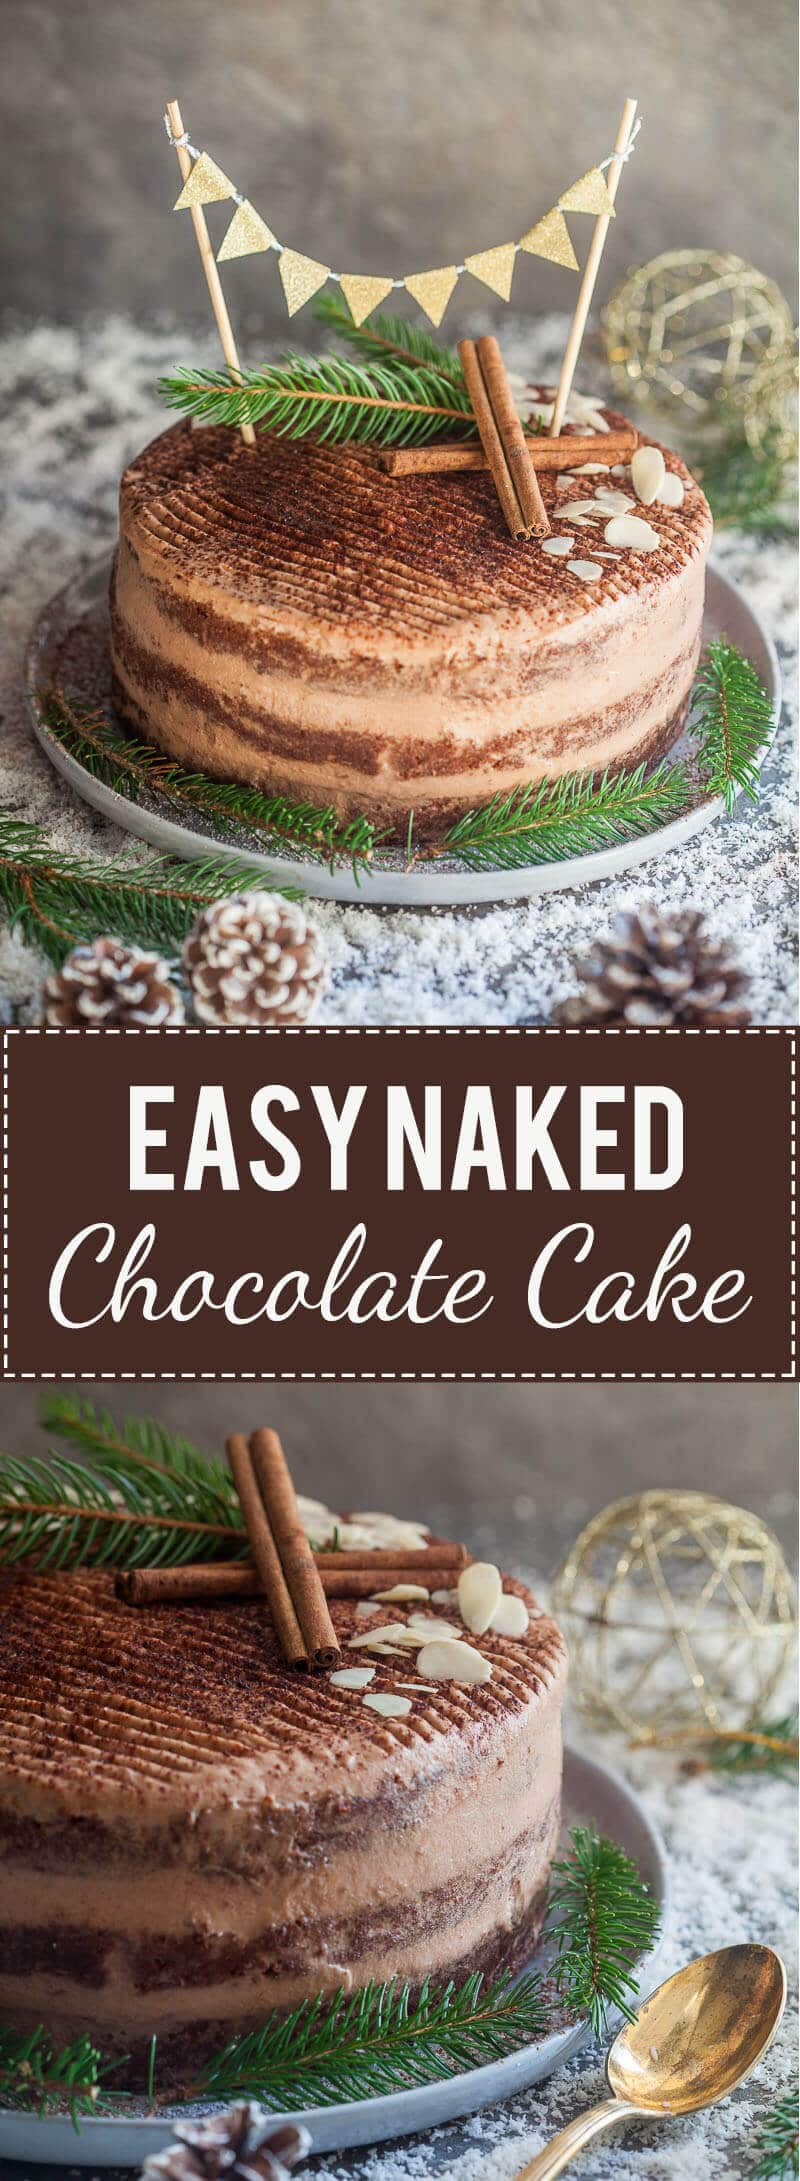 Moist and delicious, this Easy Naked Chocolate Cake is just the thing to celebrate in style. A simple cake to make with little effort!